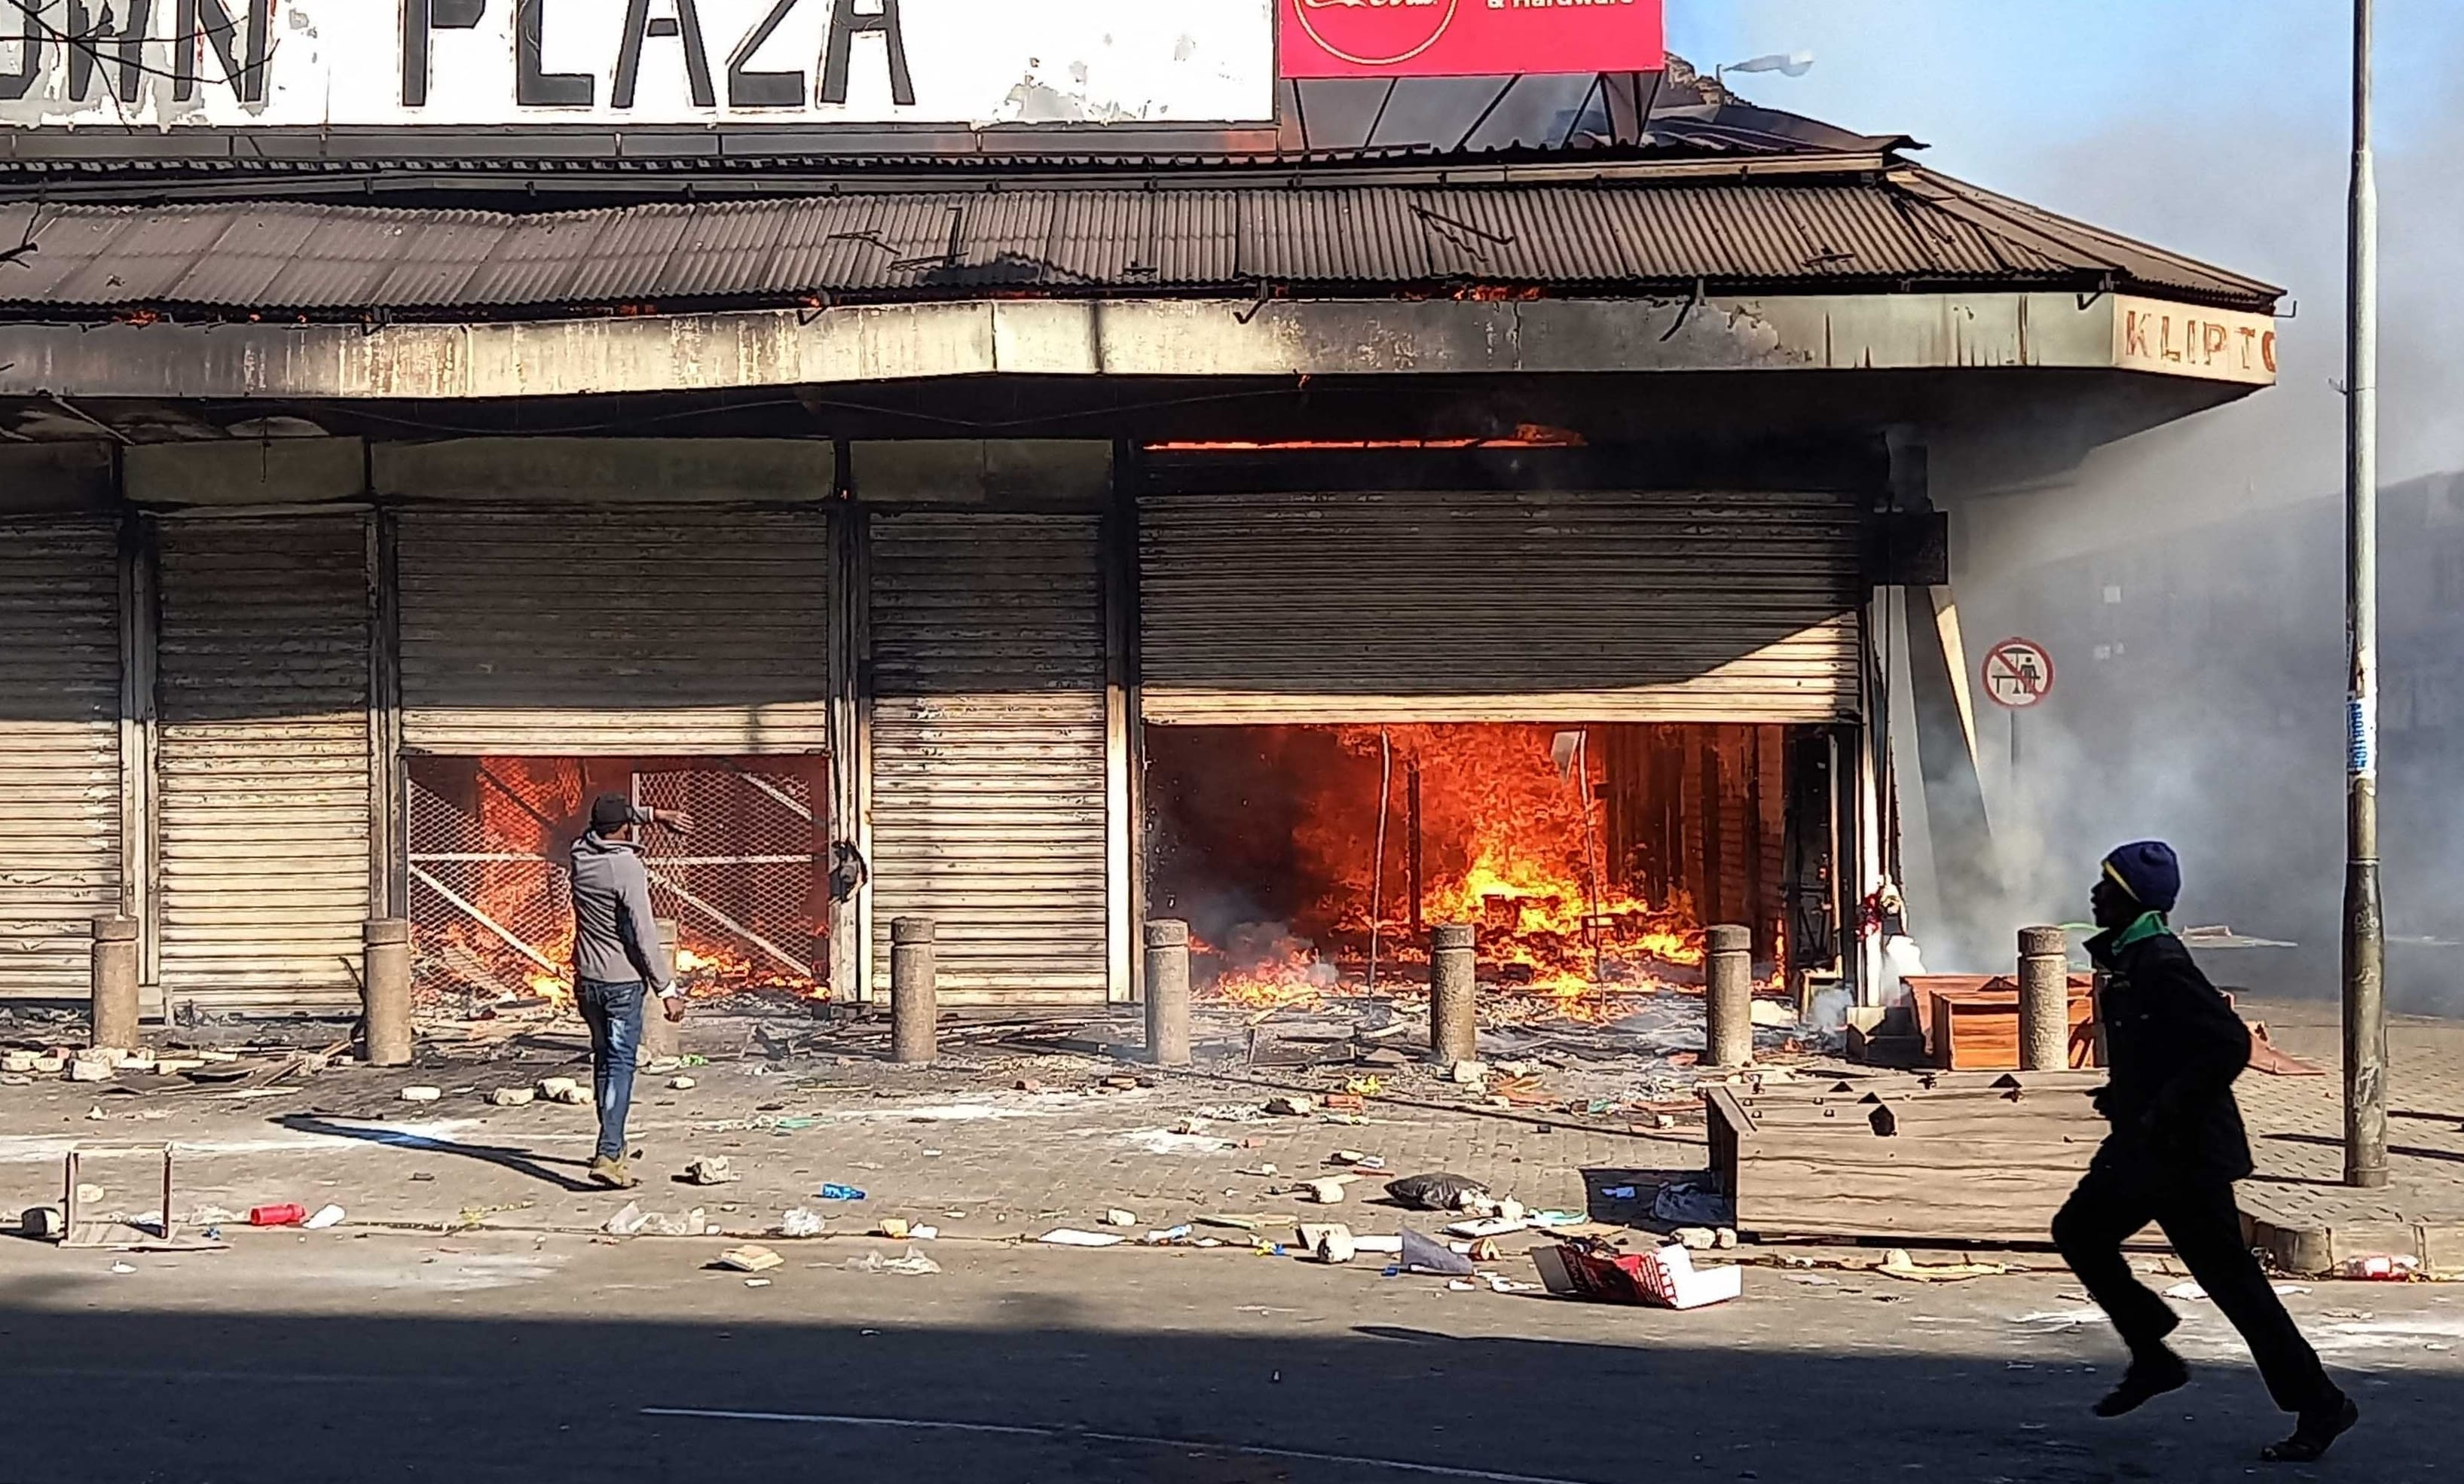 Riots Reveal South Africa's Enduring Rifts